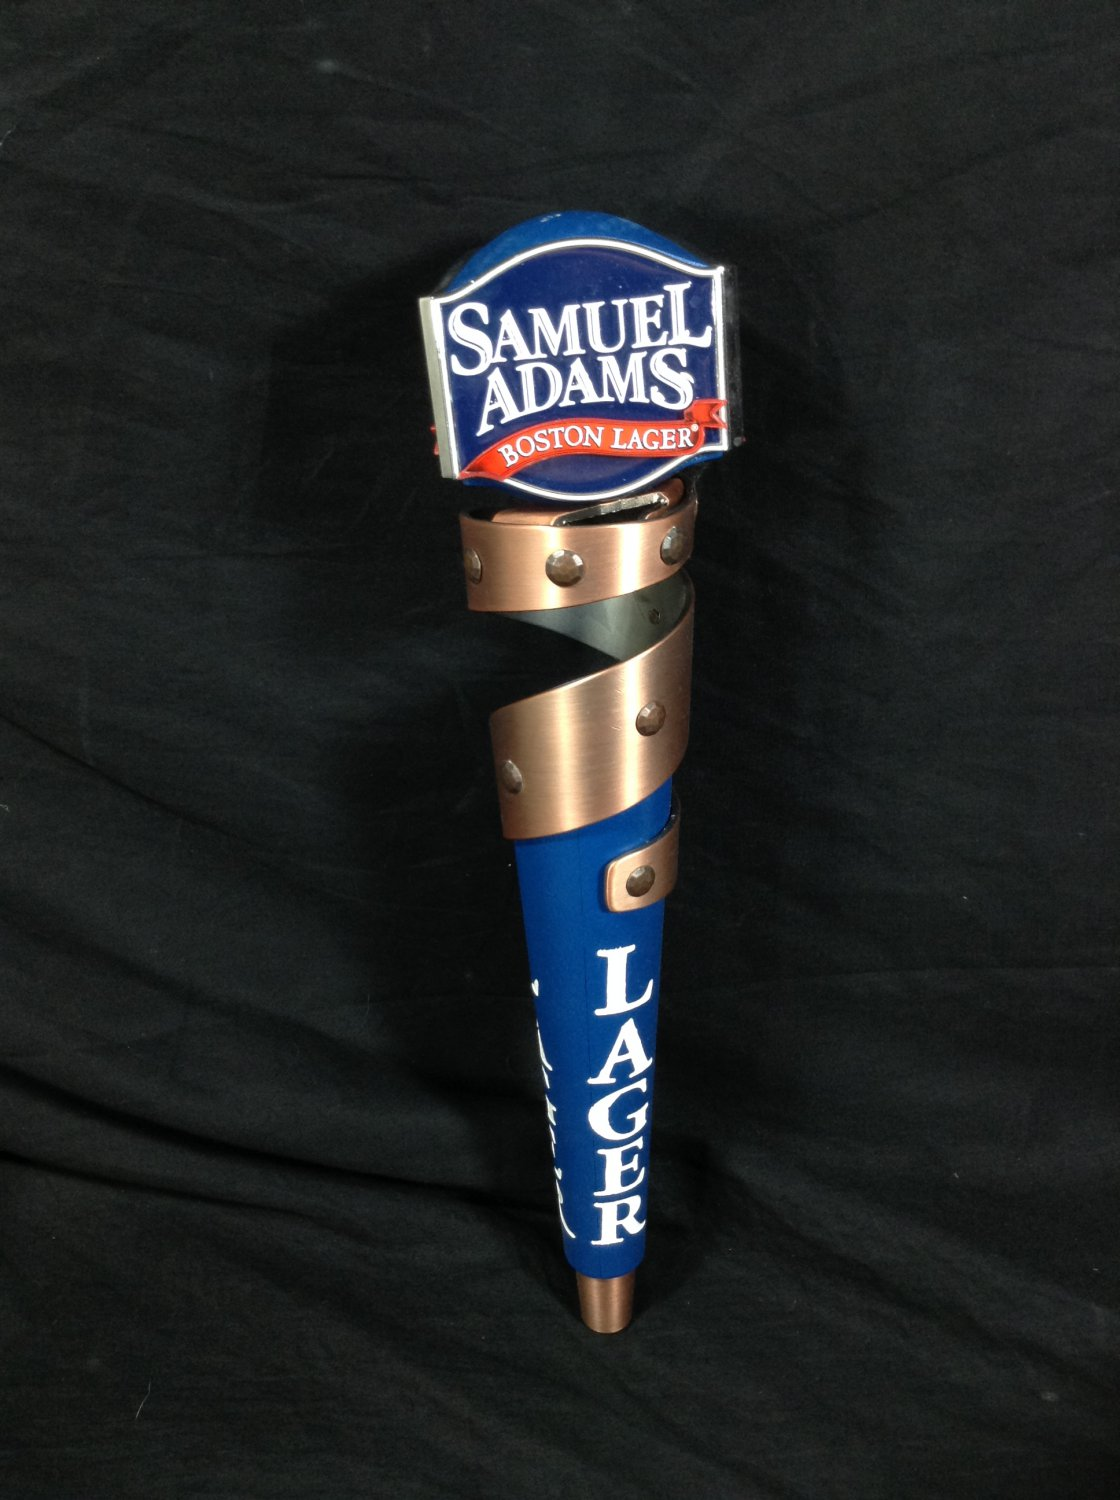 Samuel Sam Adams Boston Lager Beer Tap Handle Draft Keg Knob